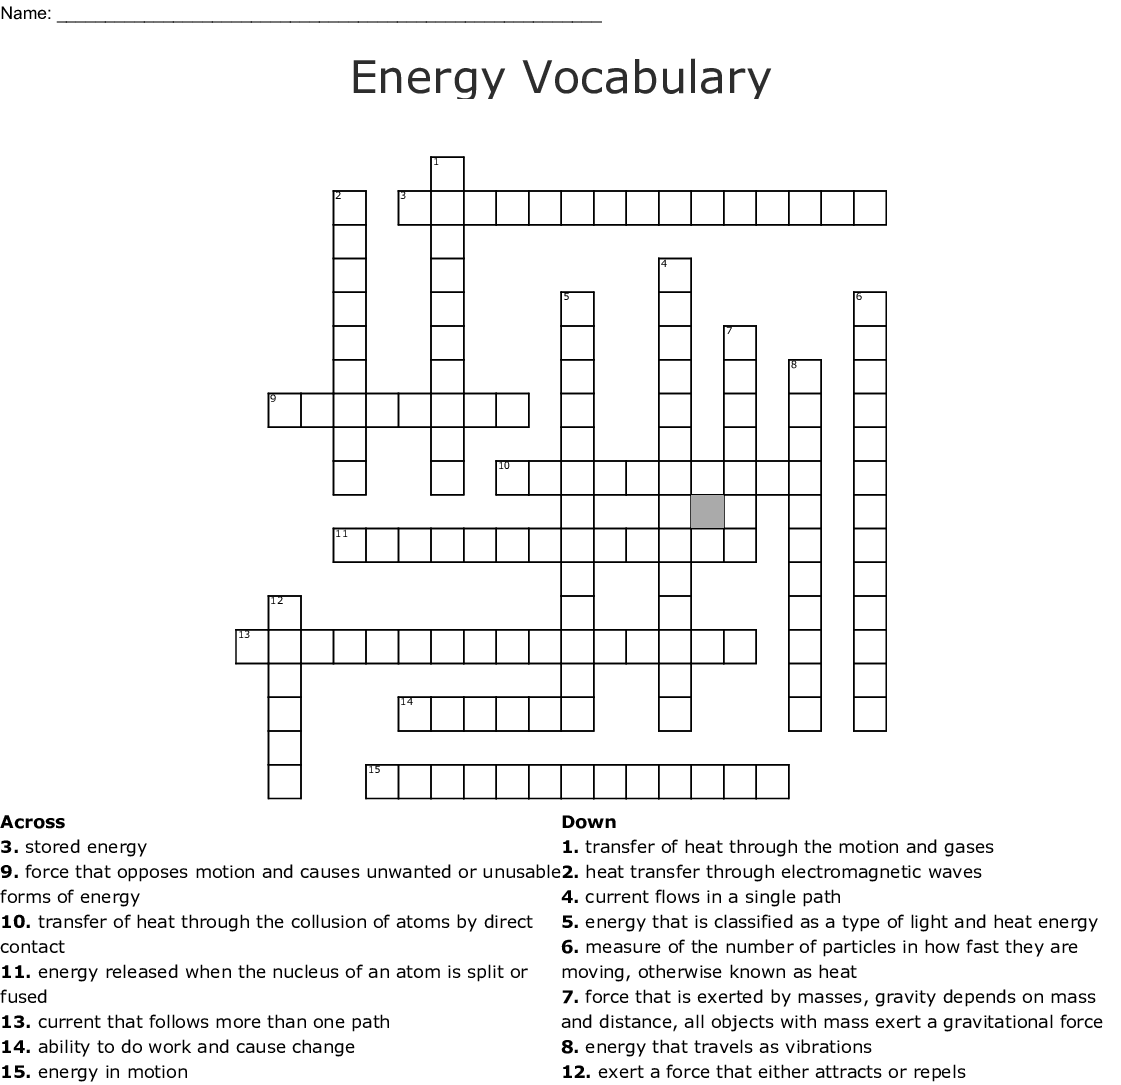 Energy Vocabulary Crossword - WordMint